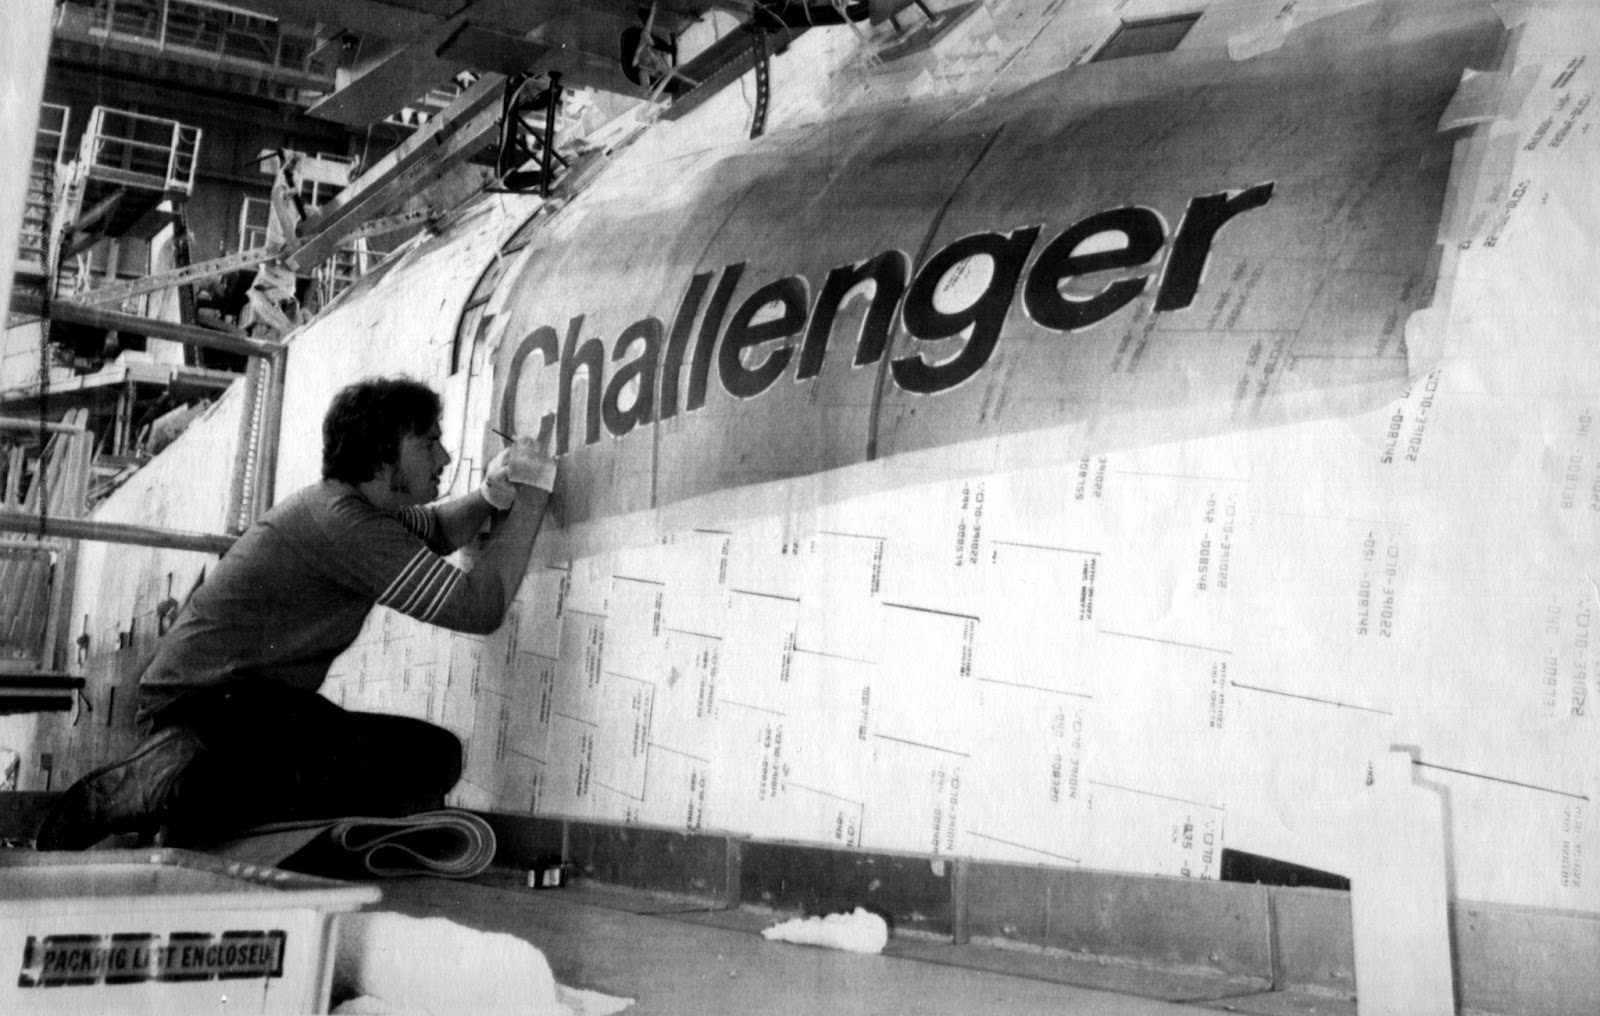 My Space Museum Space Shuttle Challenger Payload Bay Liner Photo